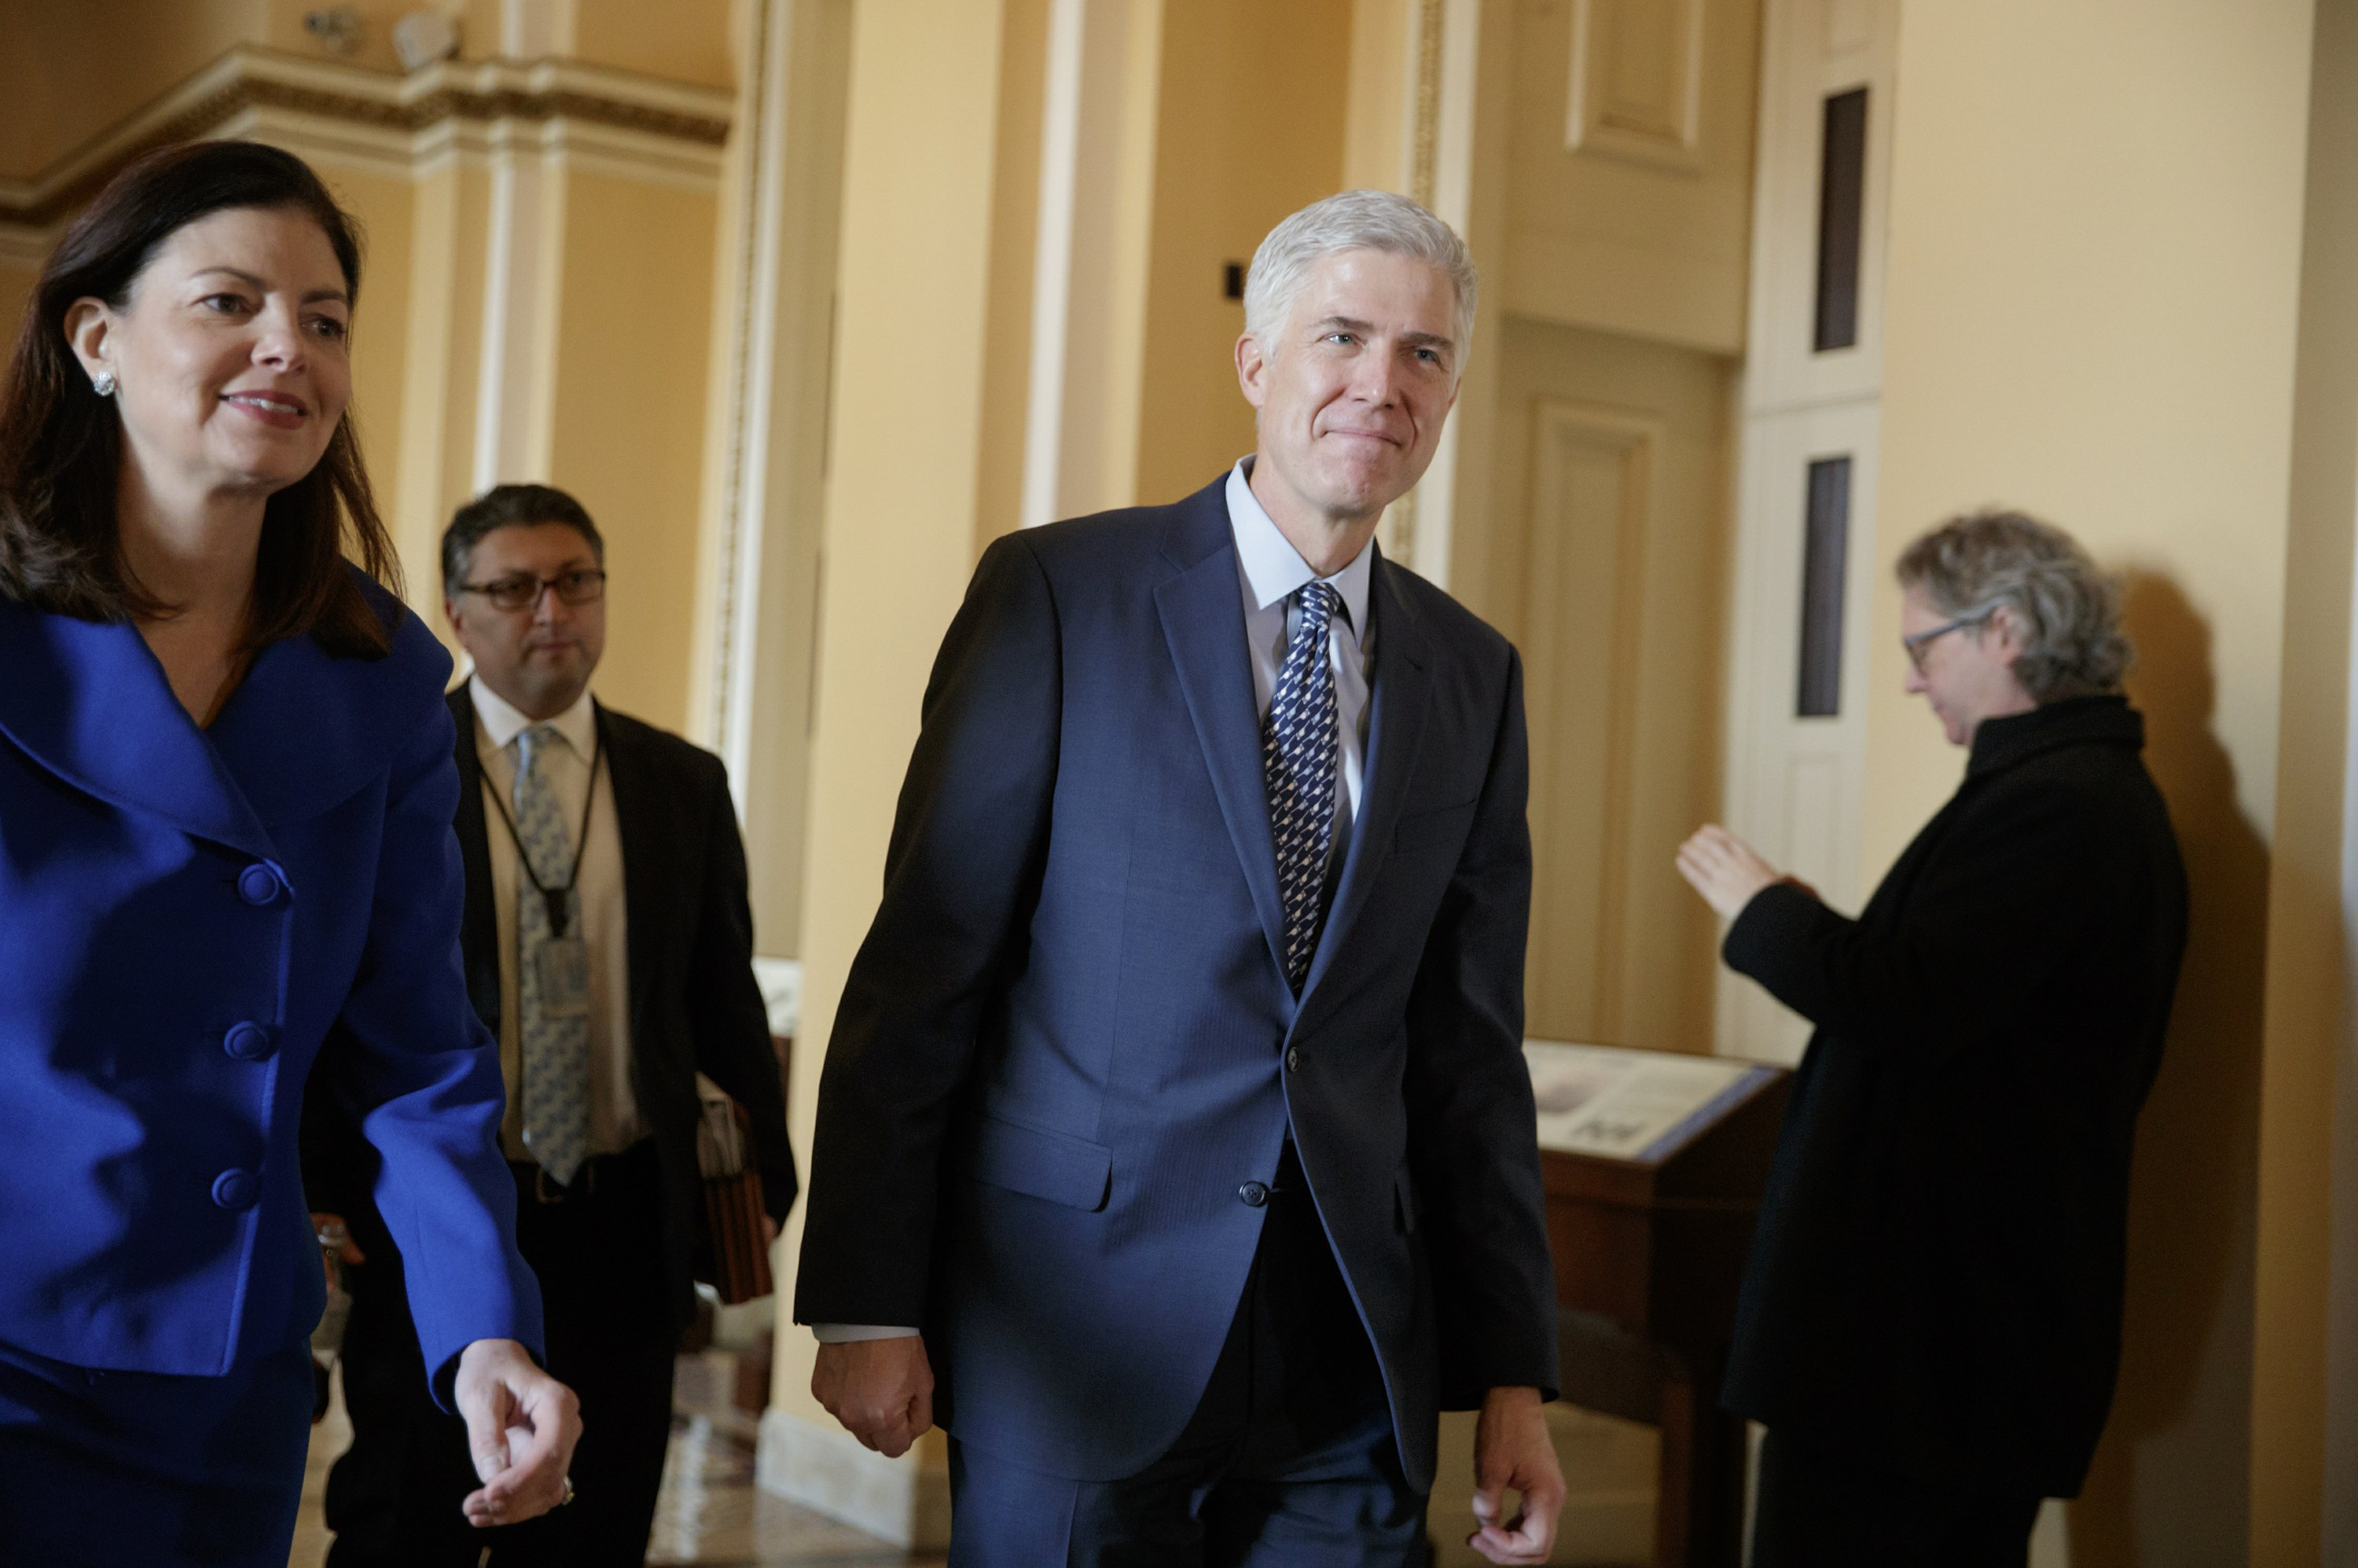 Gorsuch paid $3.28 million by former firm, under 2005 deal